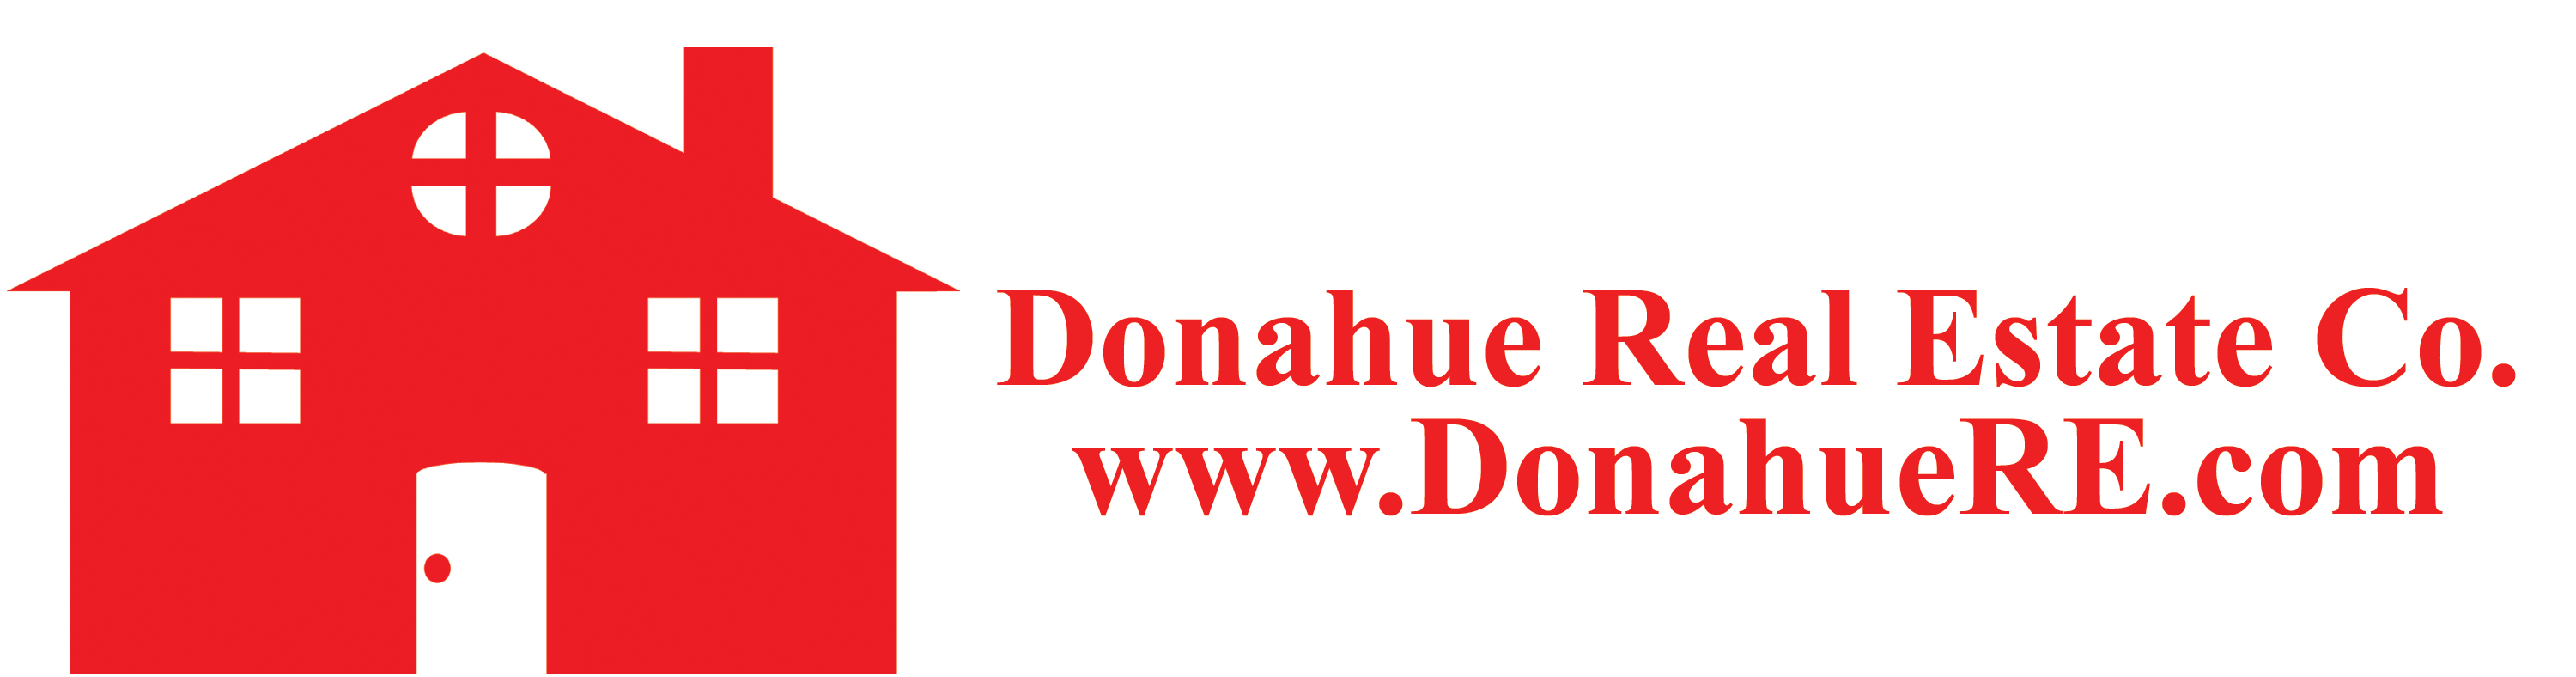 Donahue Real Estate Co.